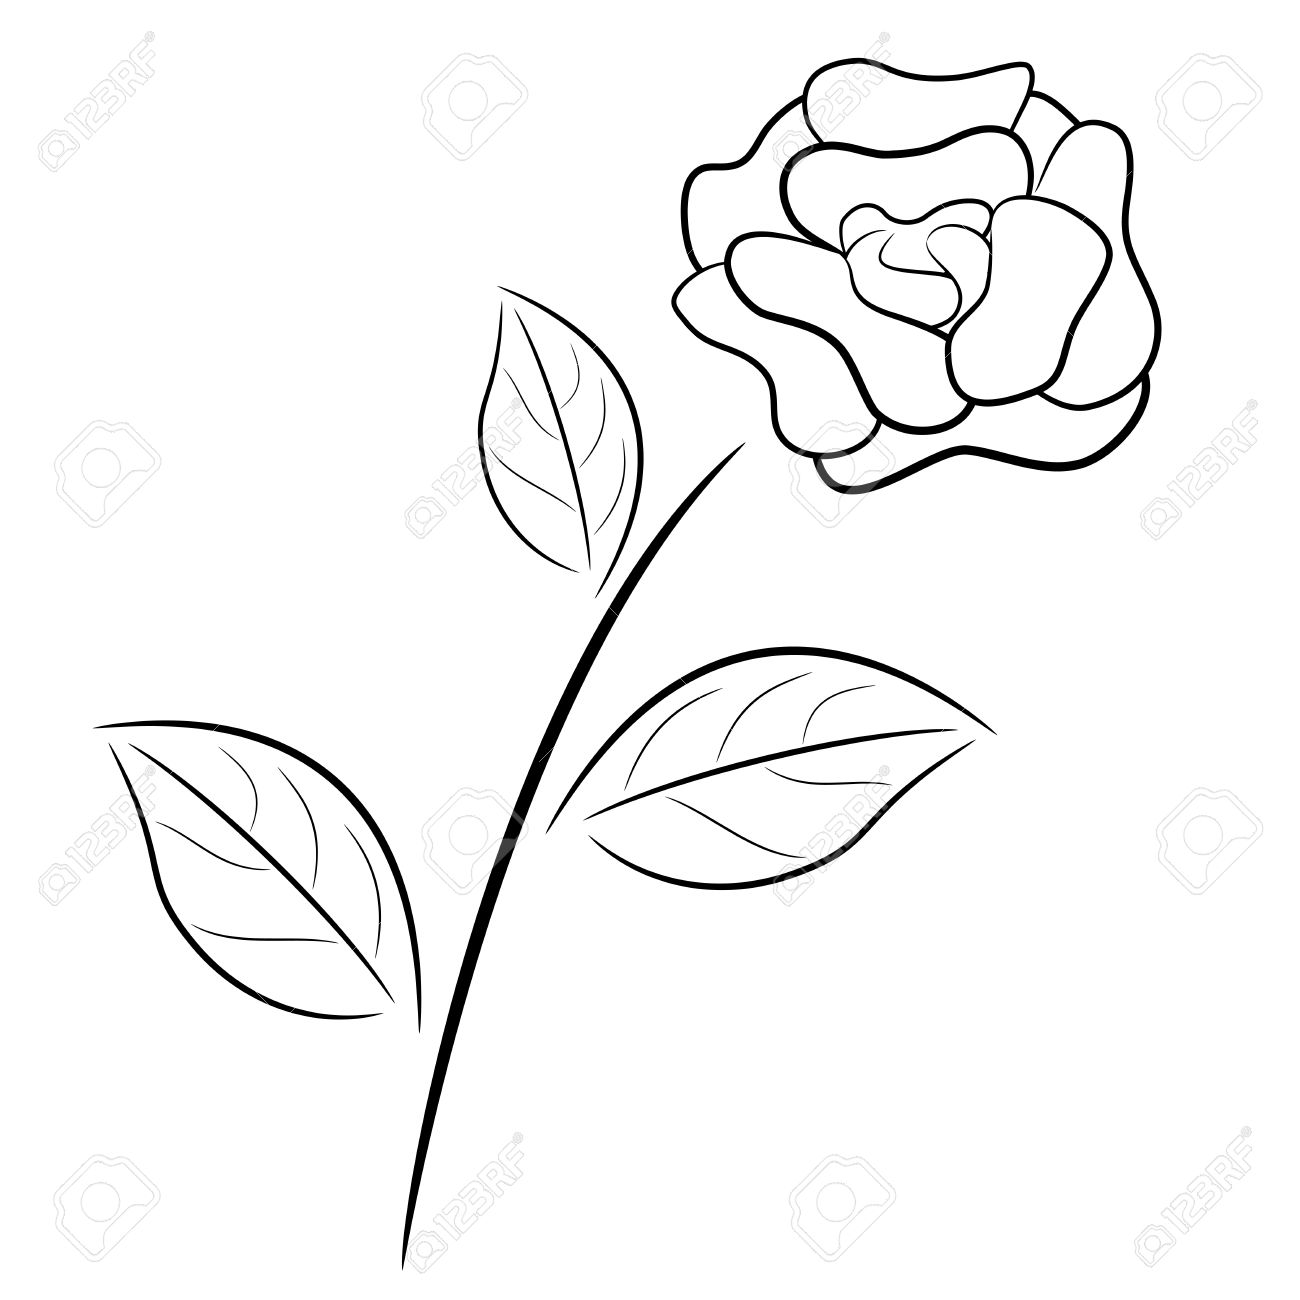 1300x1300 Black And White Drawing Of A Rose Line Tumblr Flowers Clip Art